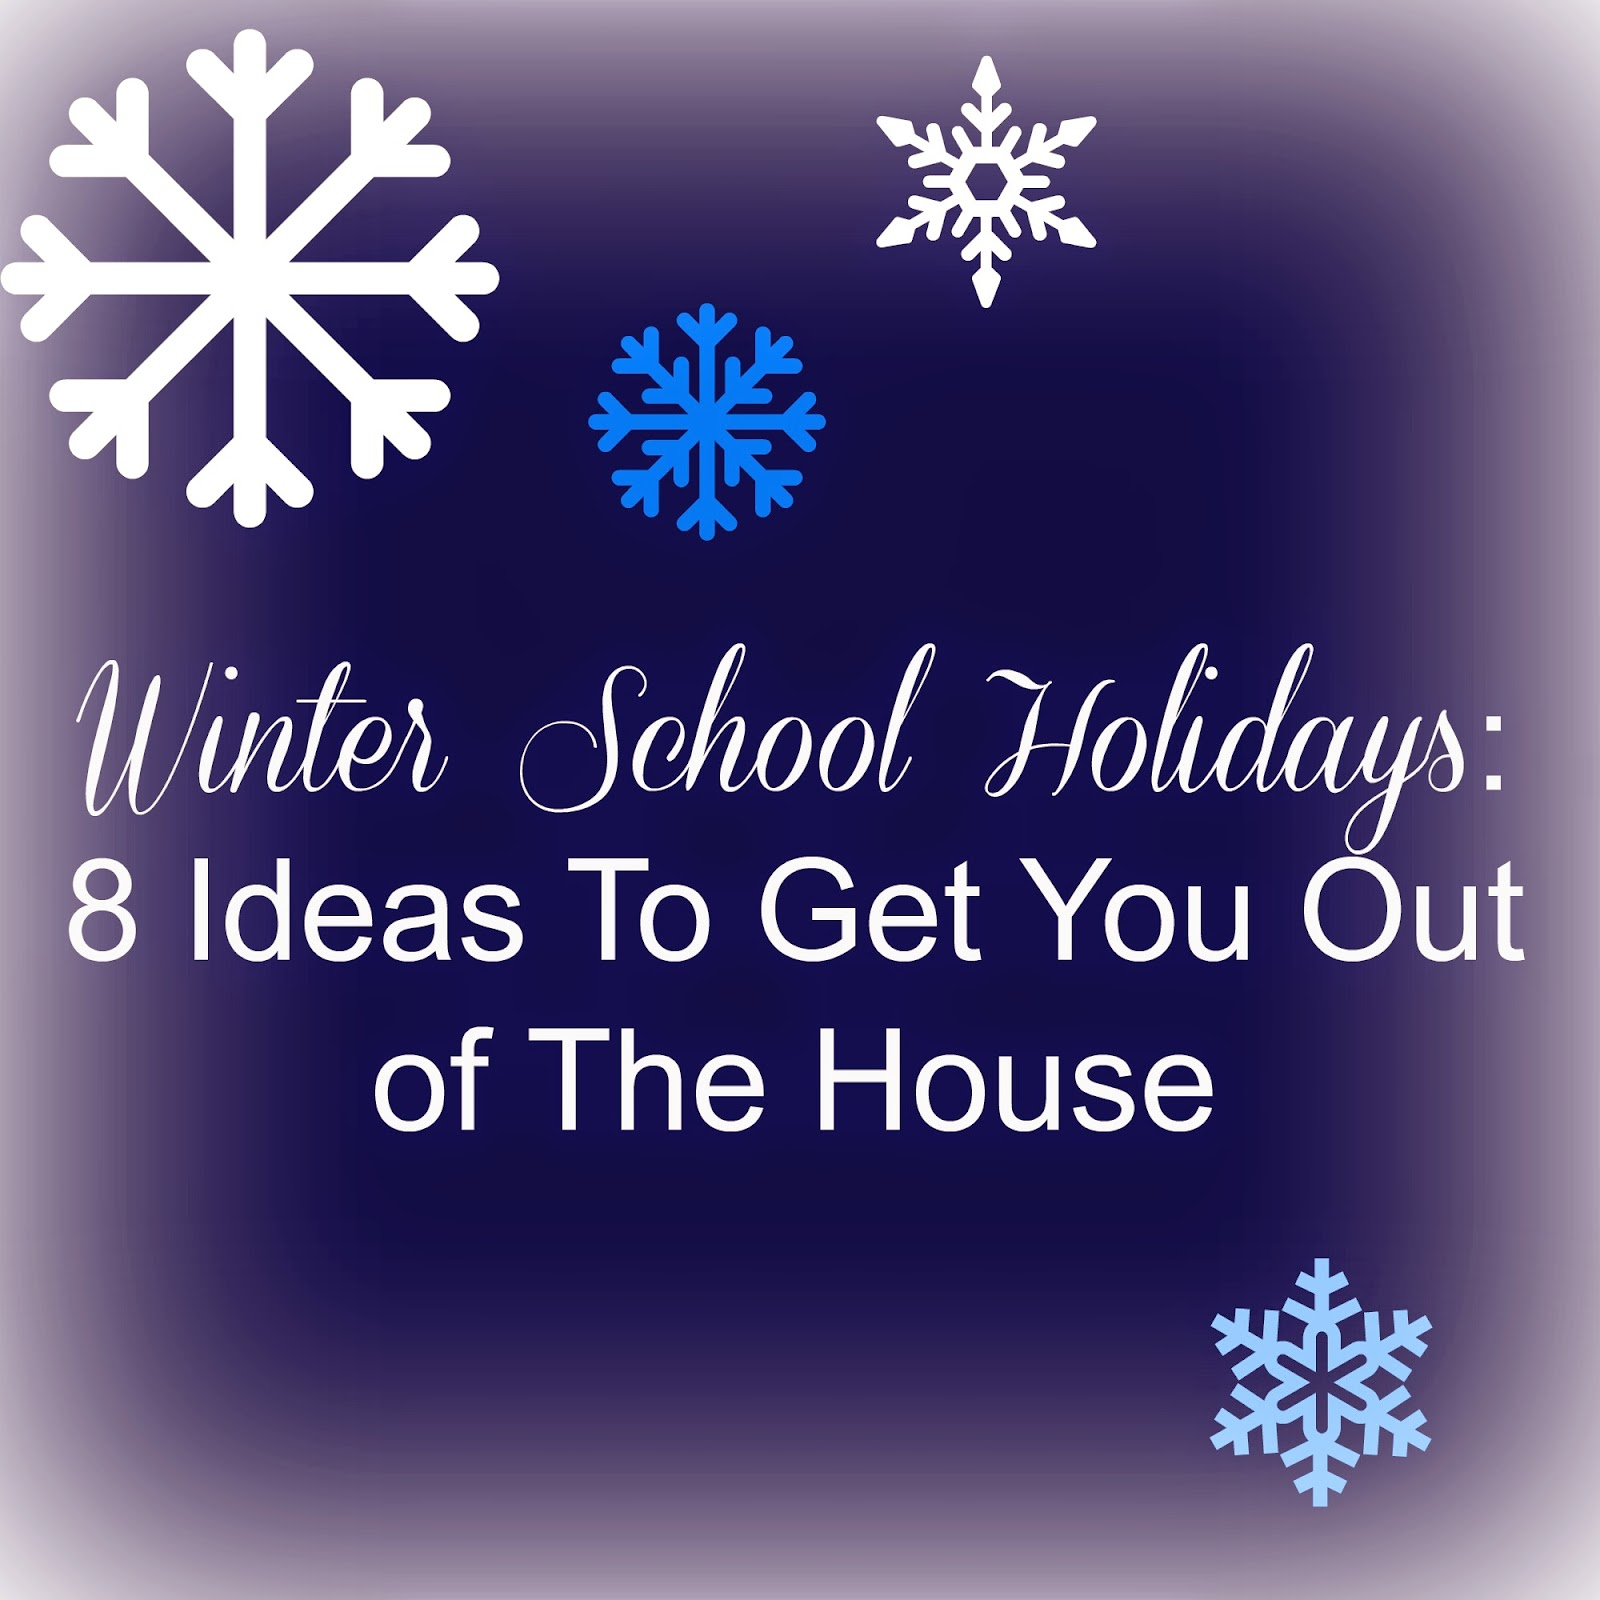 The Noatbook Winter School Holidays 8 Ideas To Get You Out Of The House